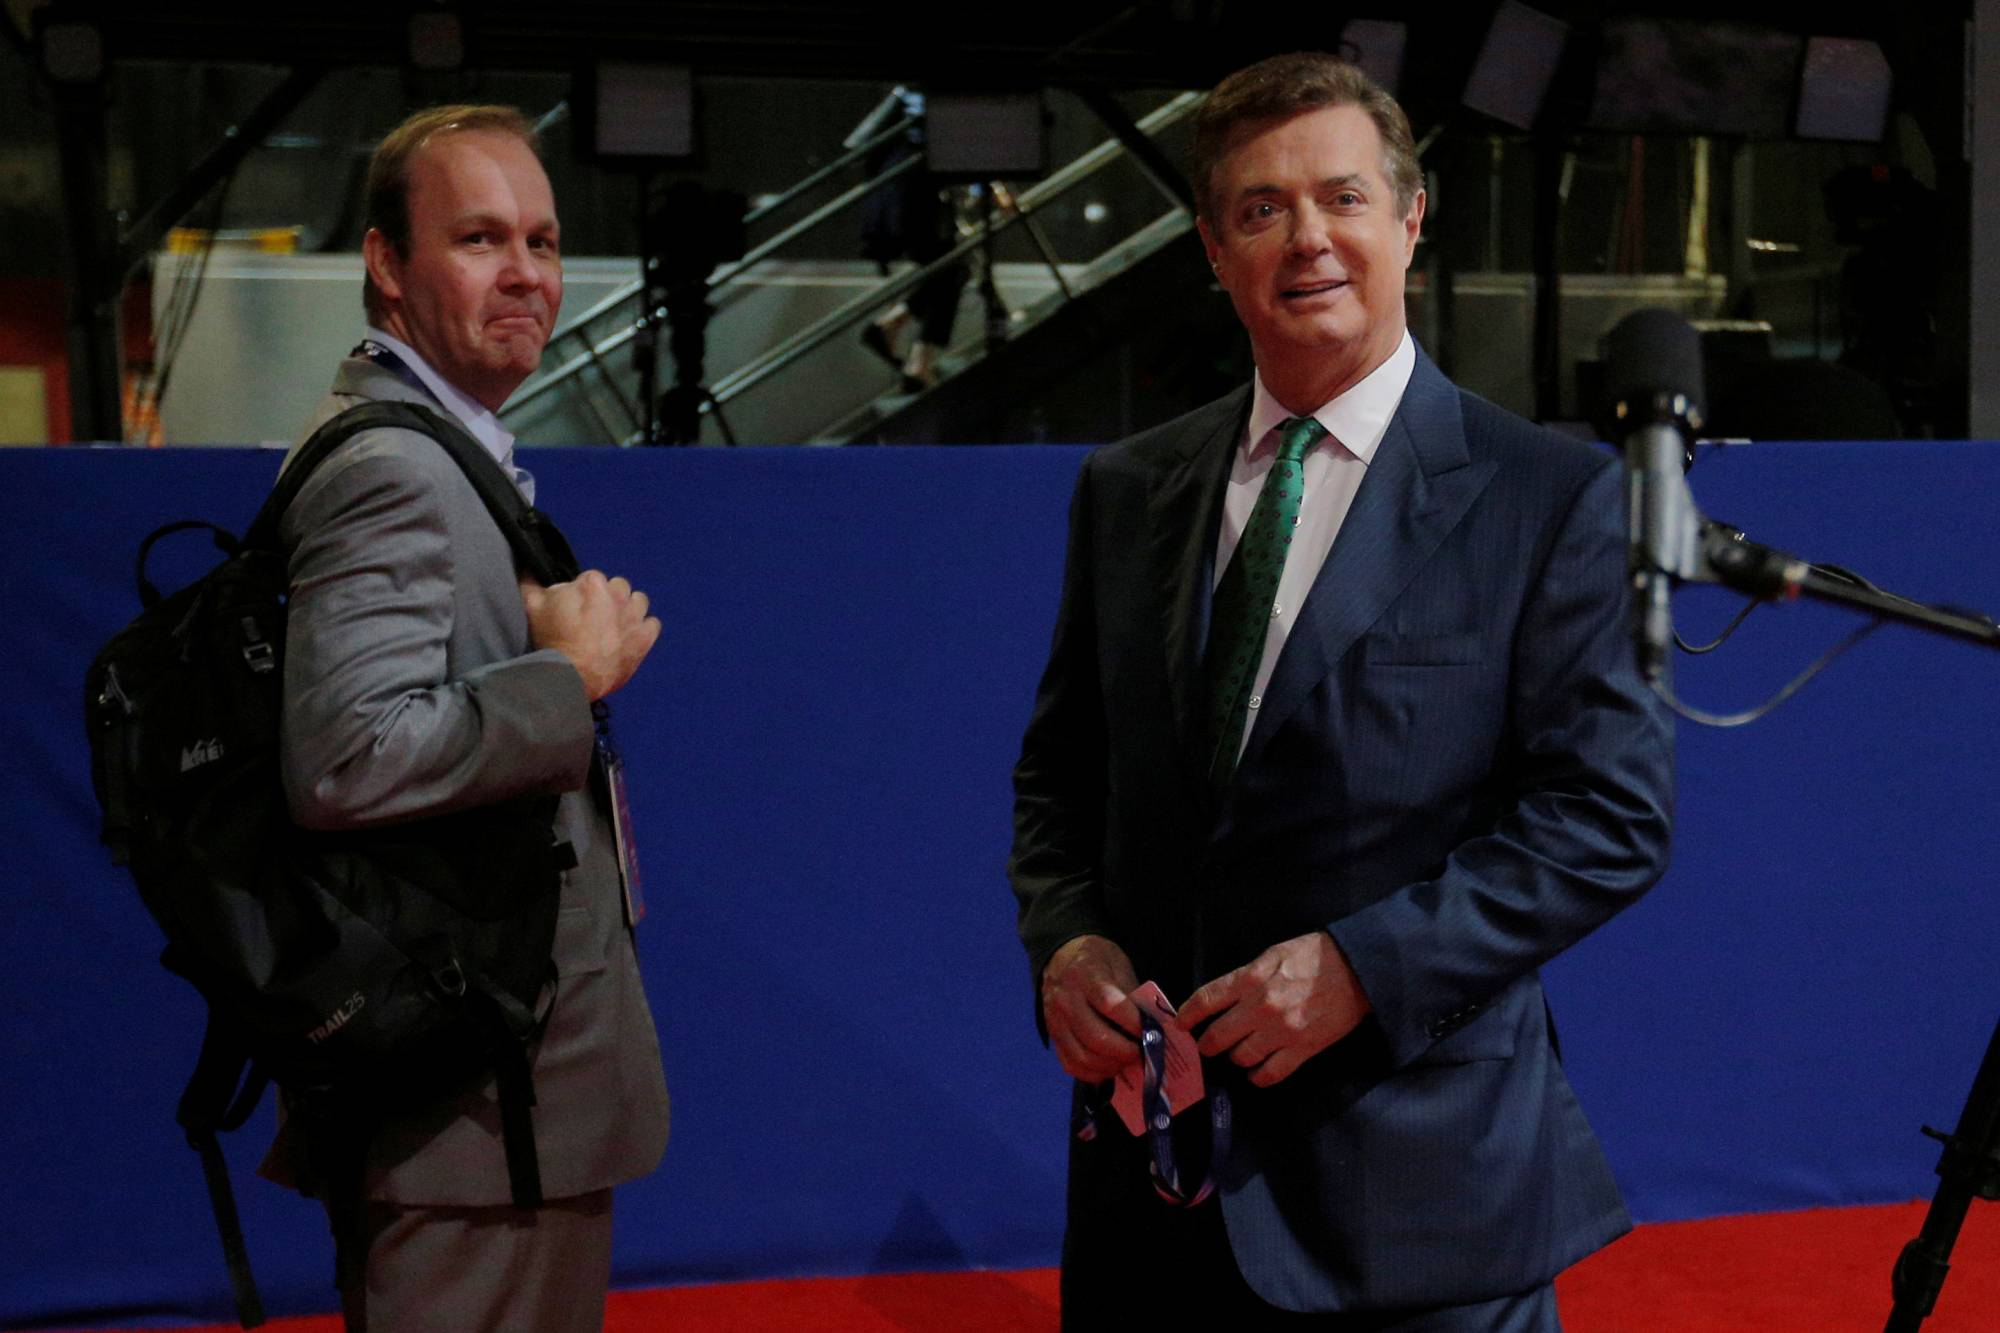 Paul Manafort and Rick Gates stand on the floor of the Republican National Convention in Cleveland